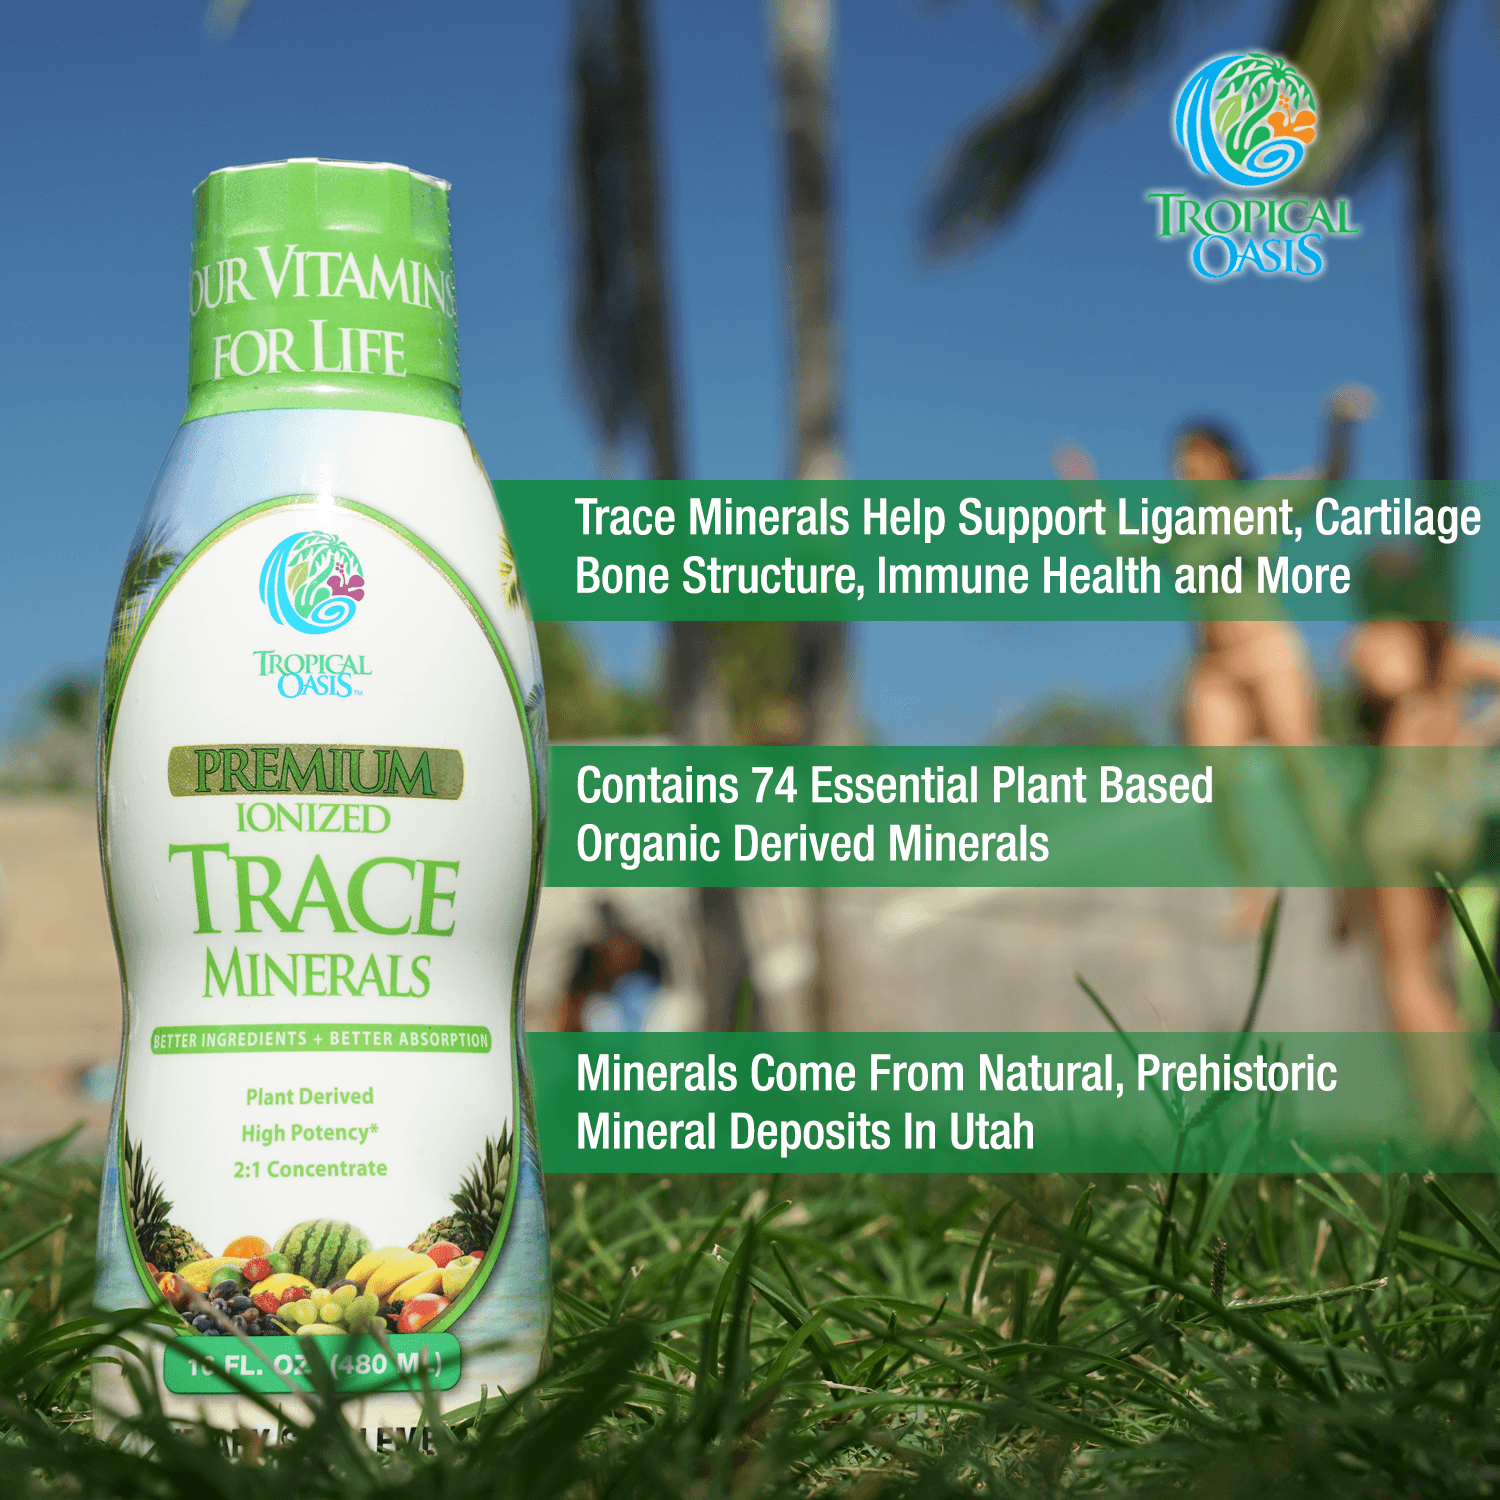 Premium Plant Based Trace Minerals - 74 Natural Organic Ionized Trace Minerals - tropical-oasis-store